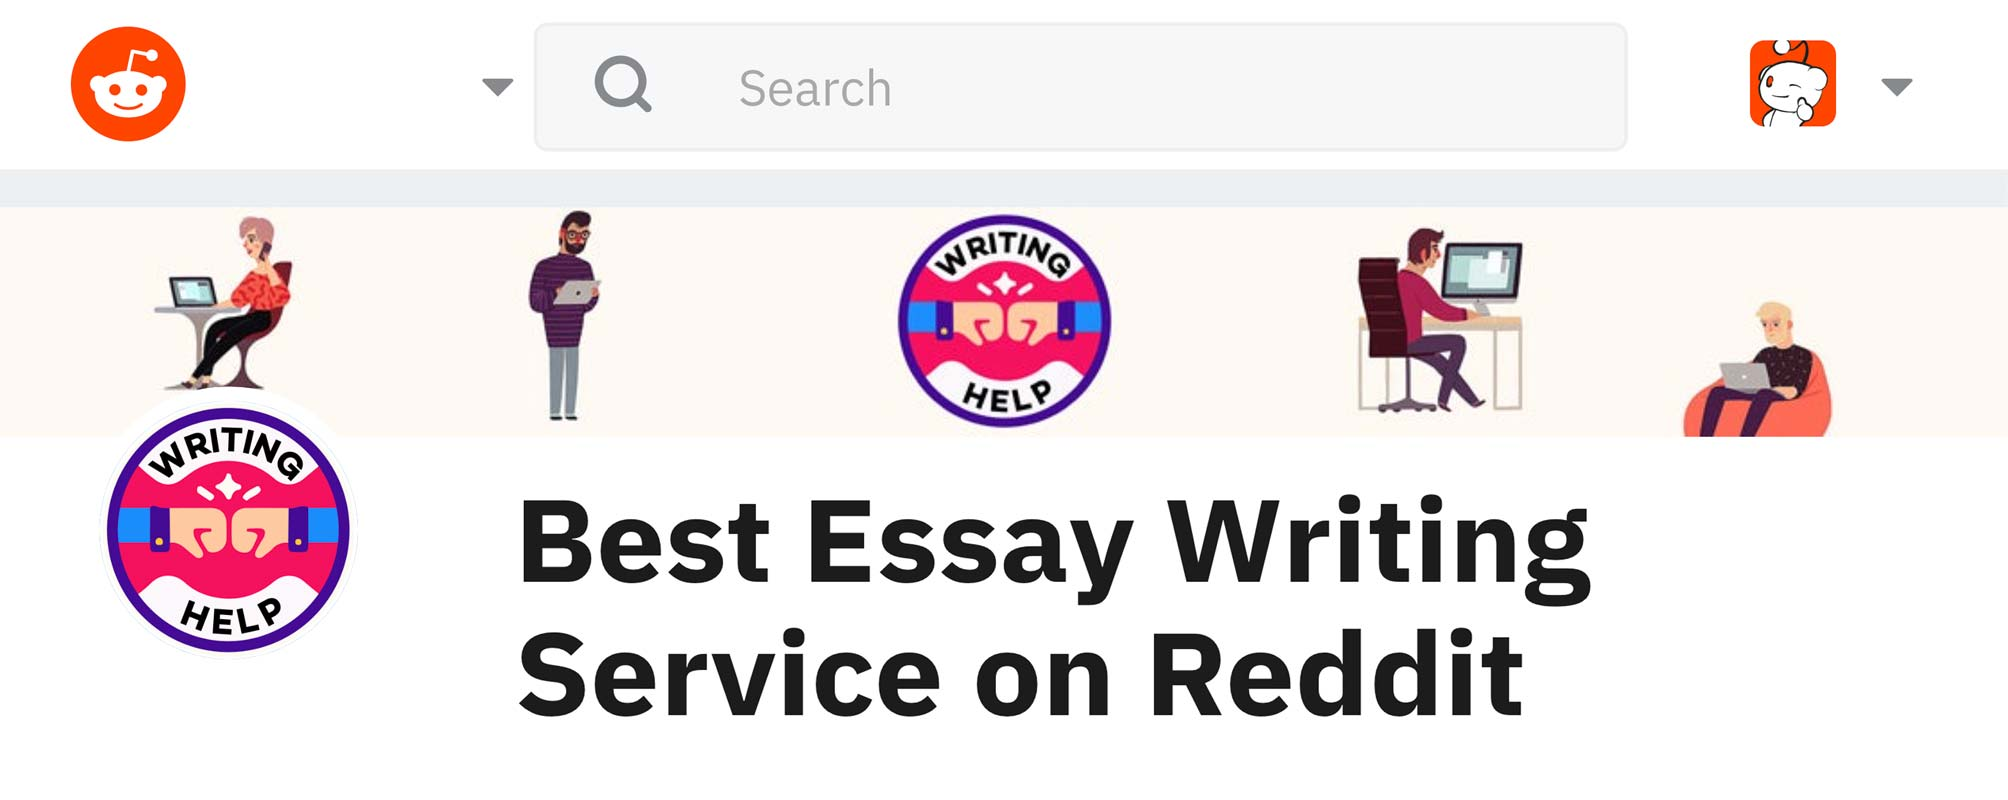 Best Essay Writing Service on Reddit